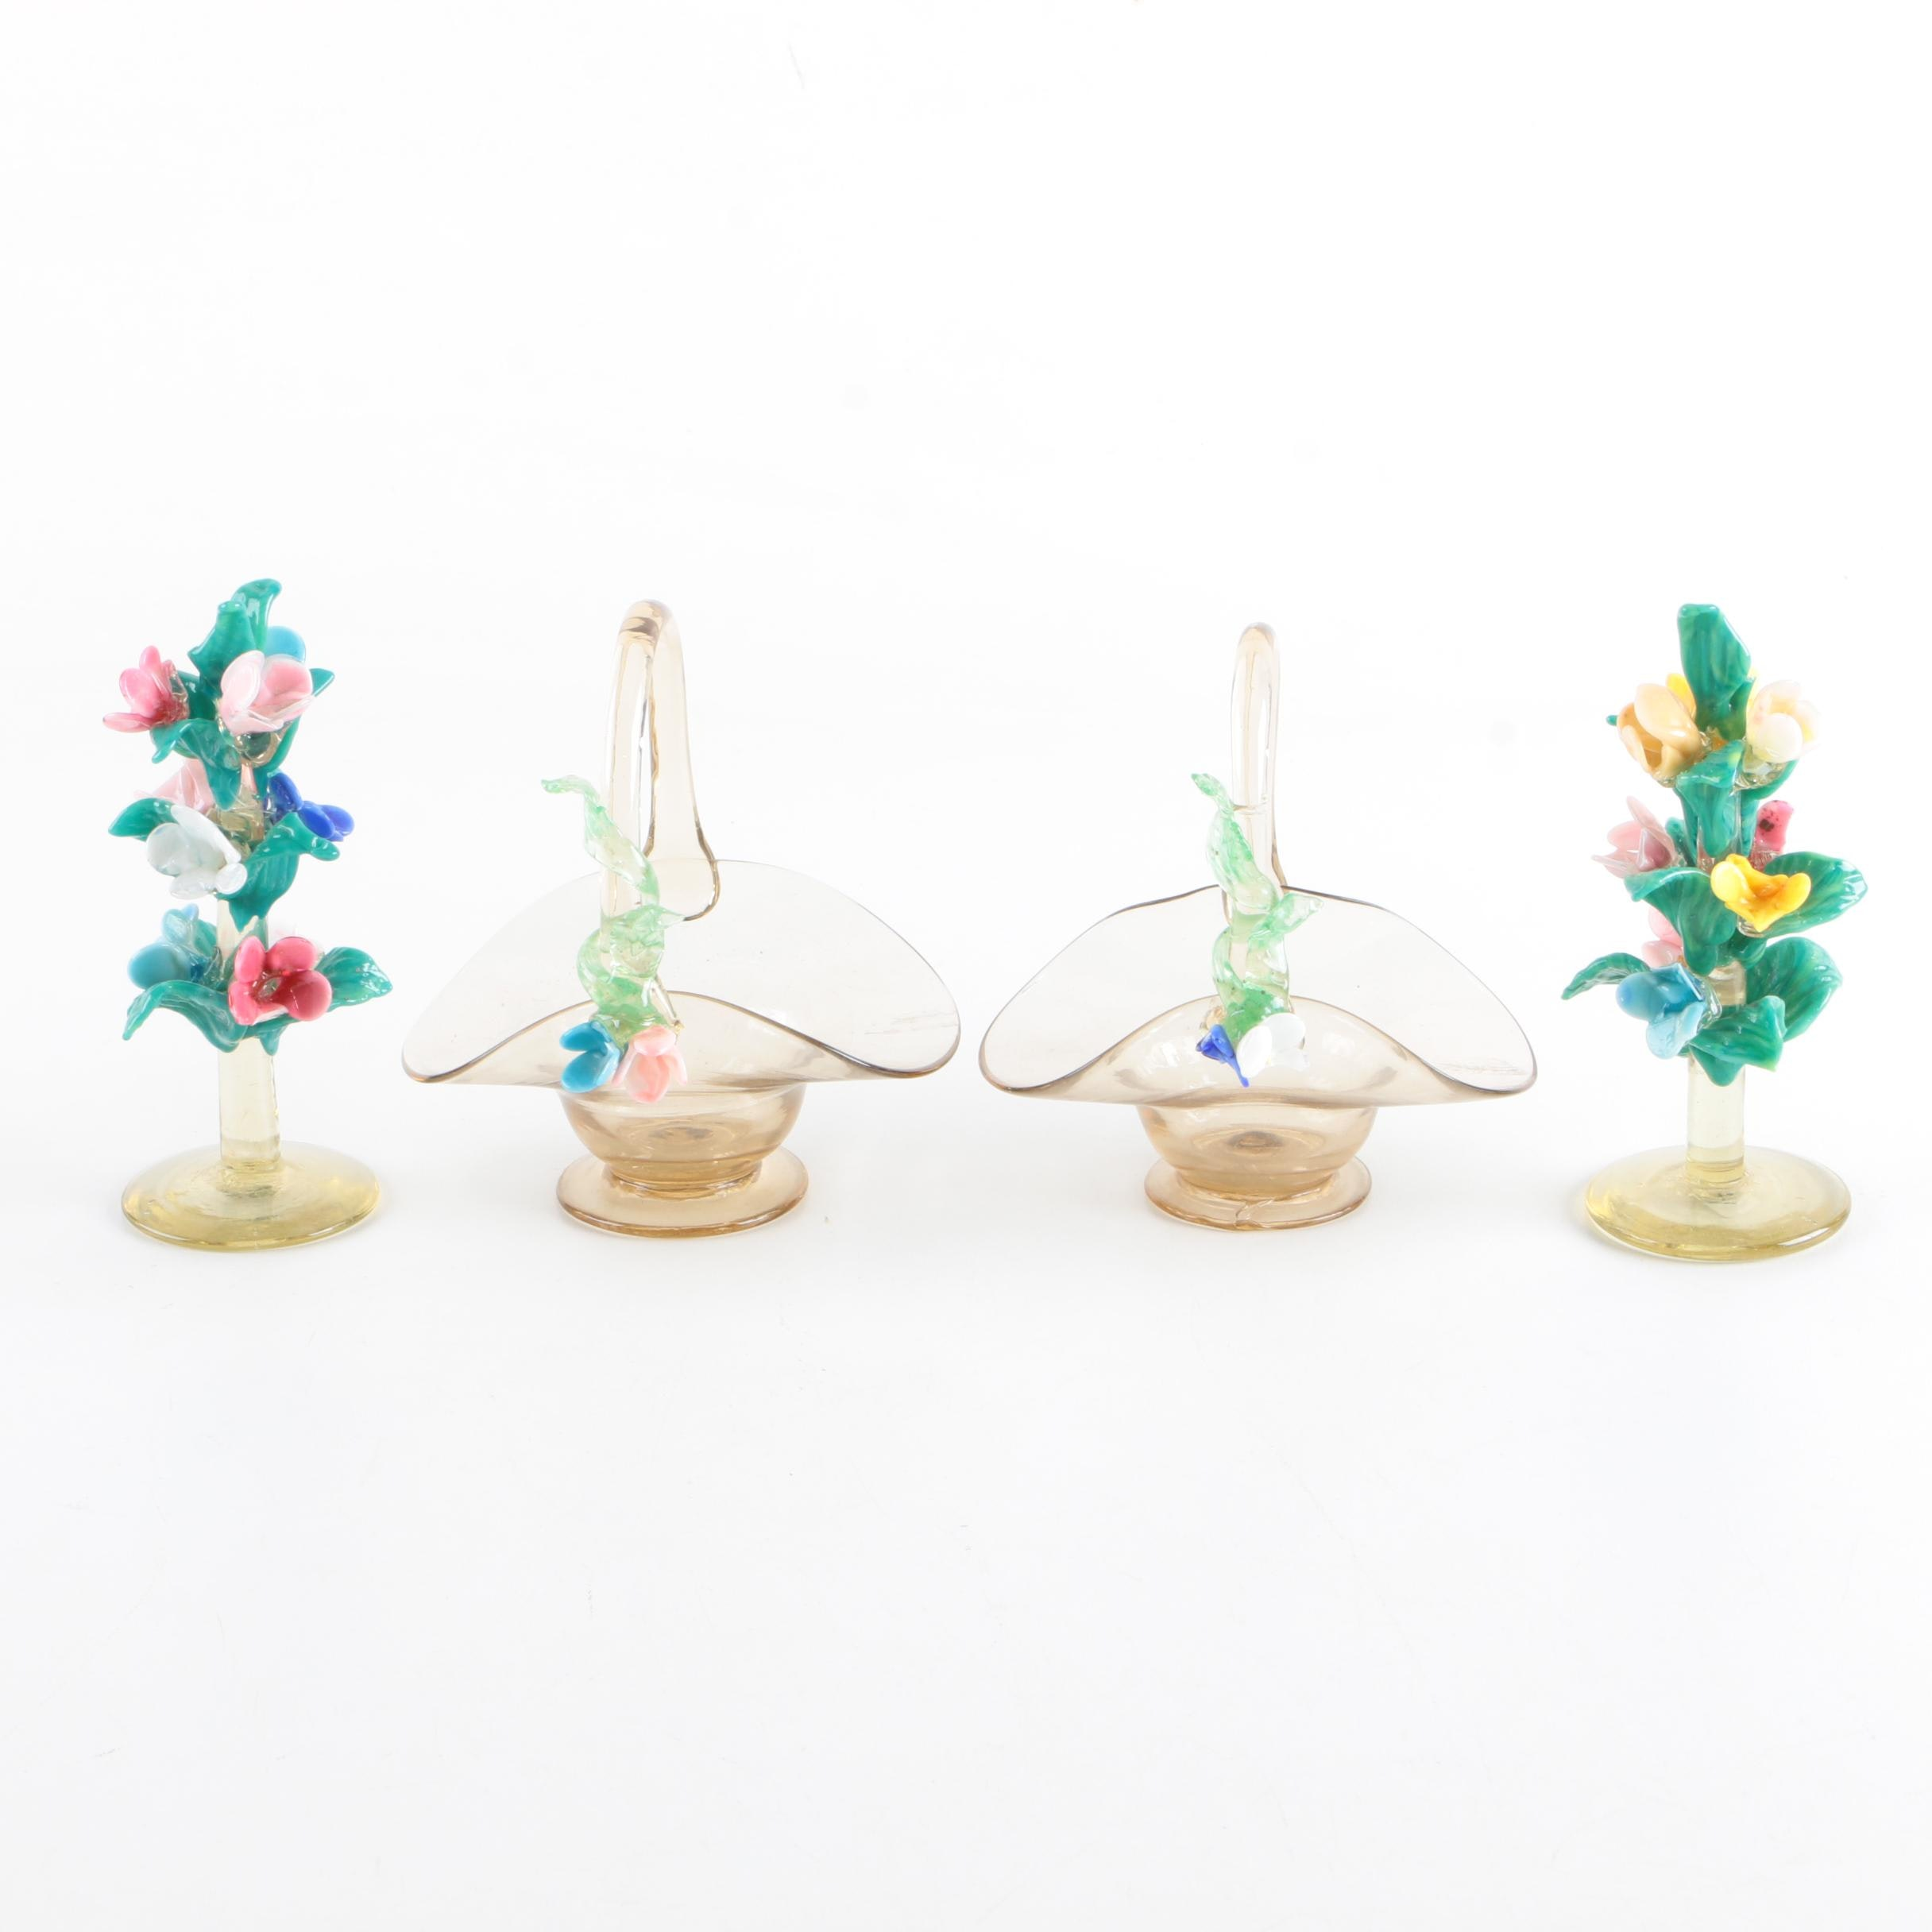 1920s Venetian Glass Floral Sculptures and Baskets